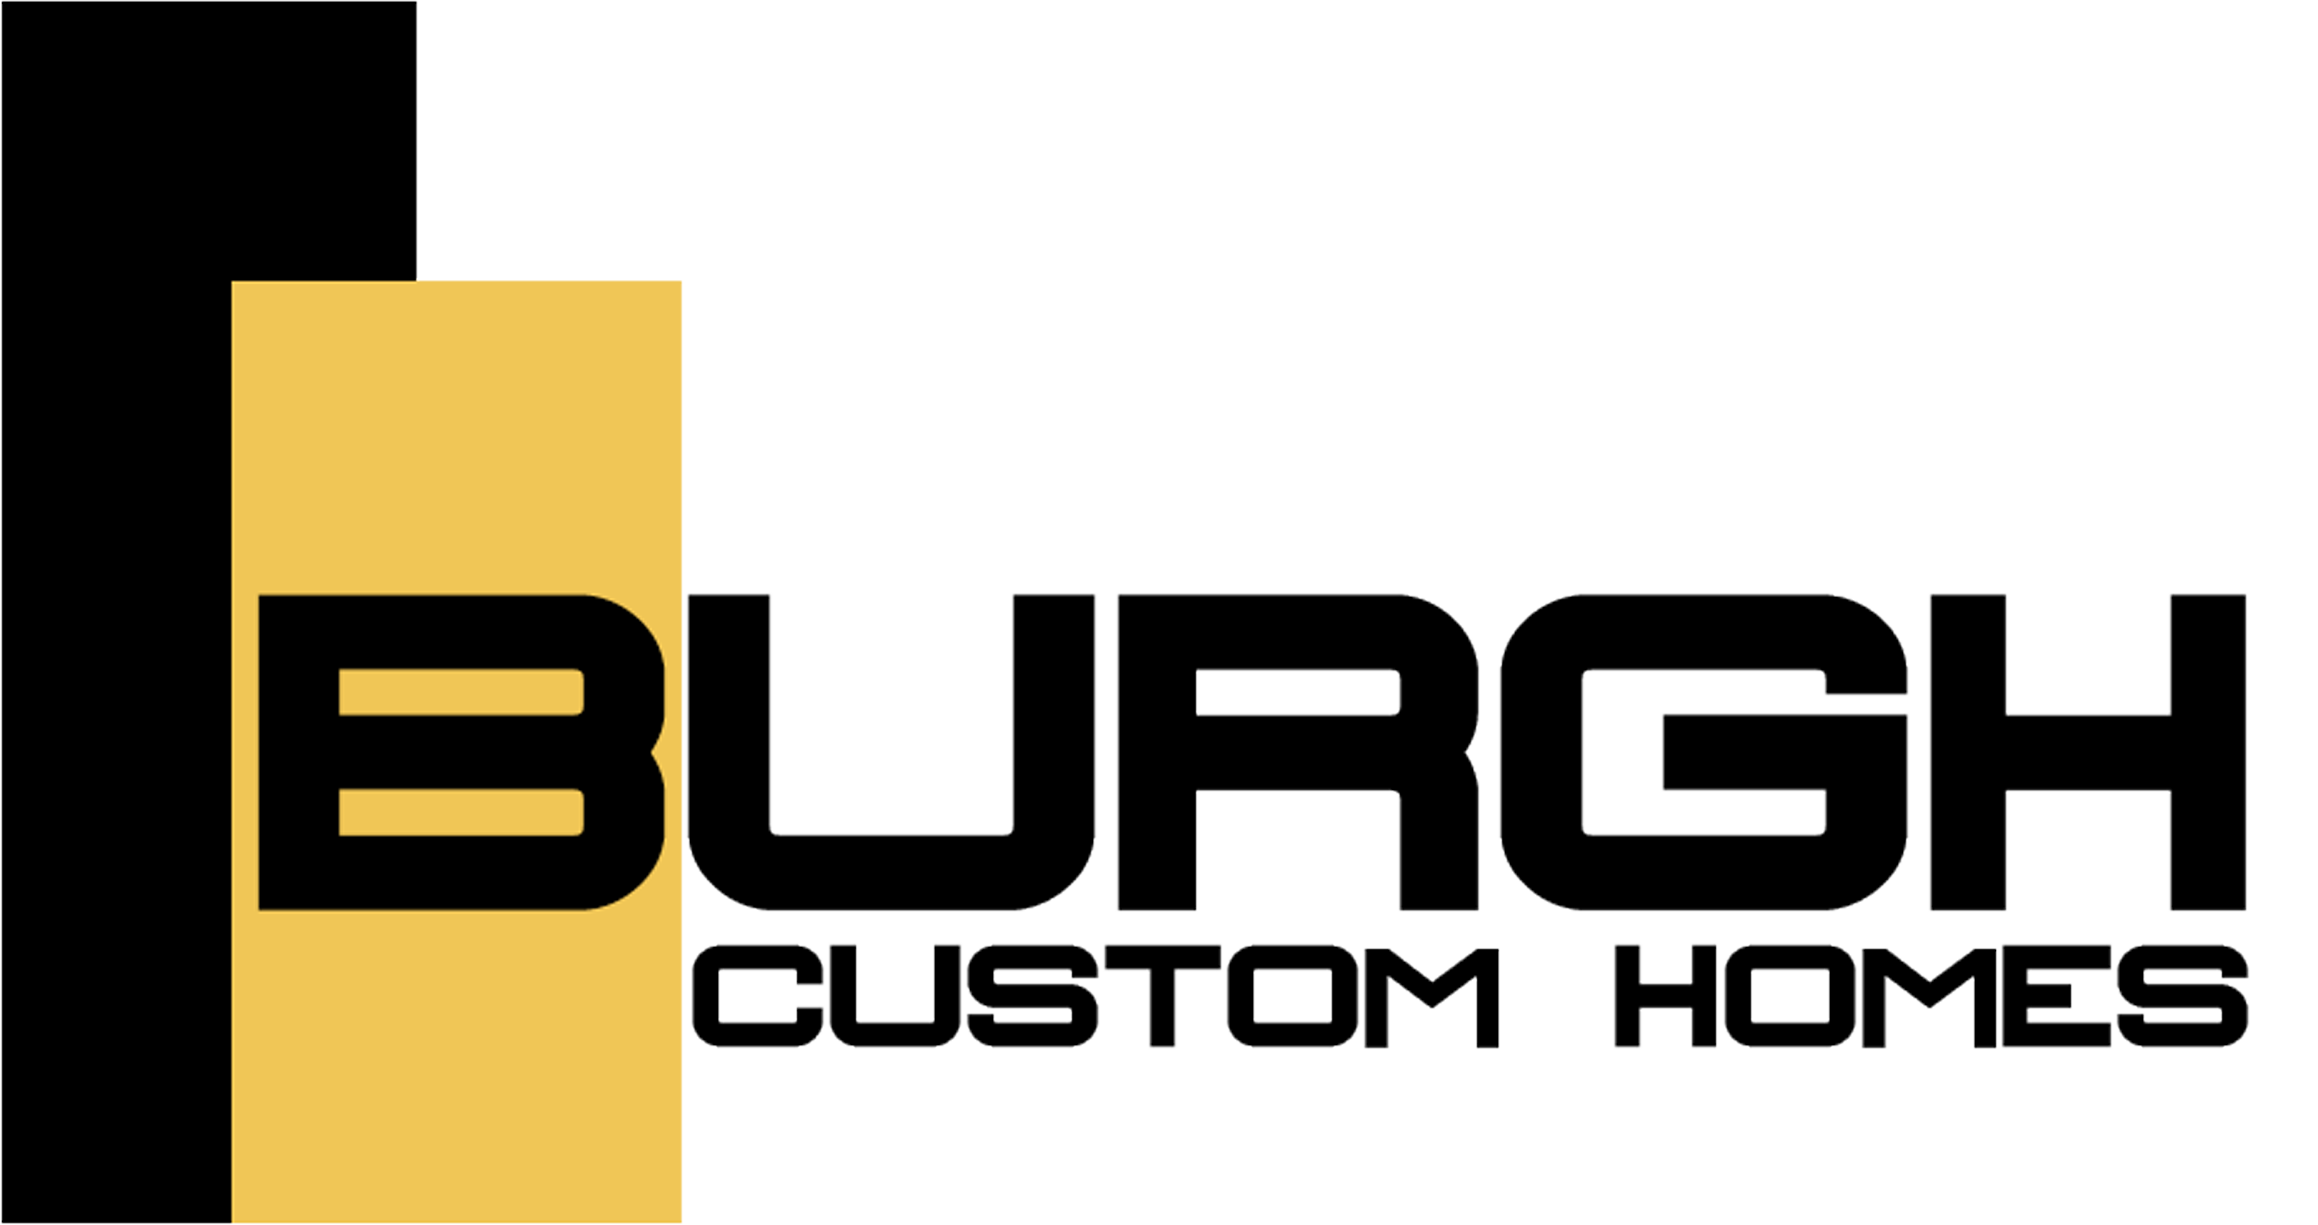 Burgh Custom Homes